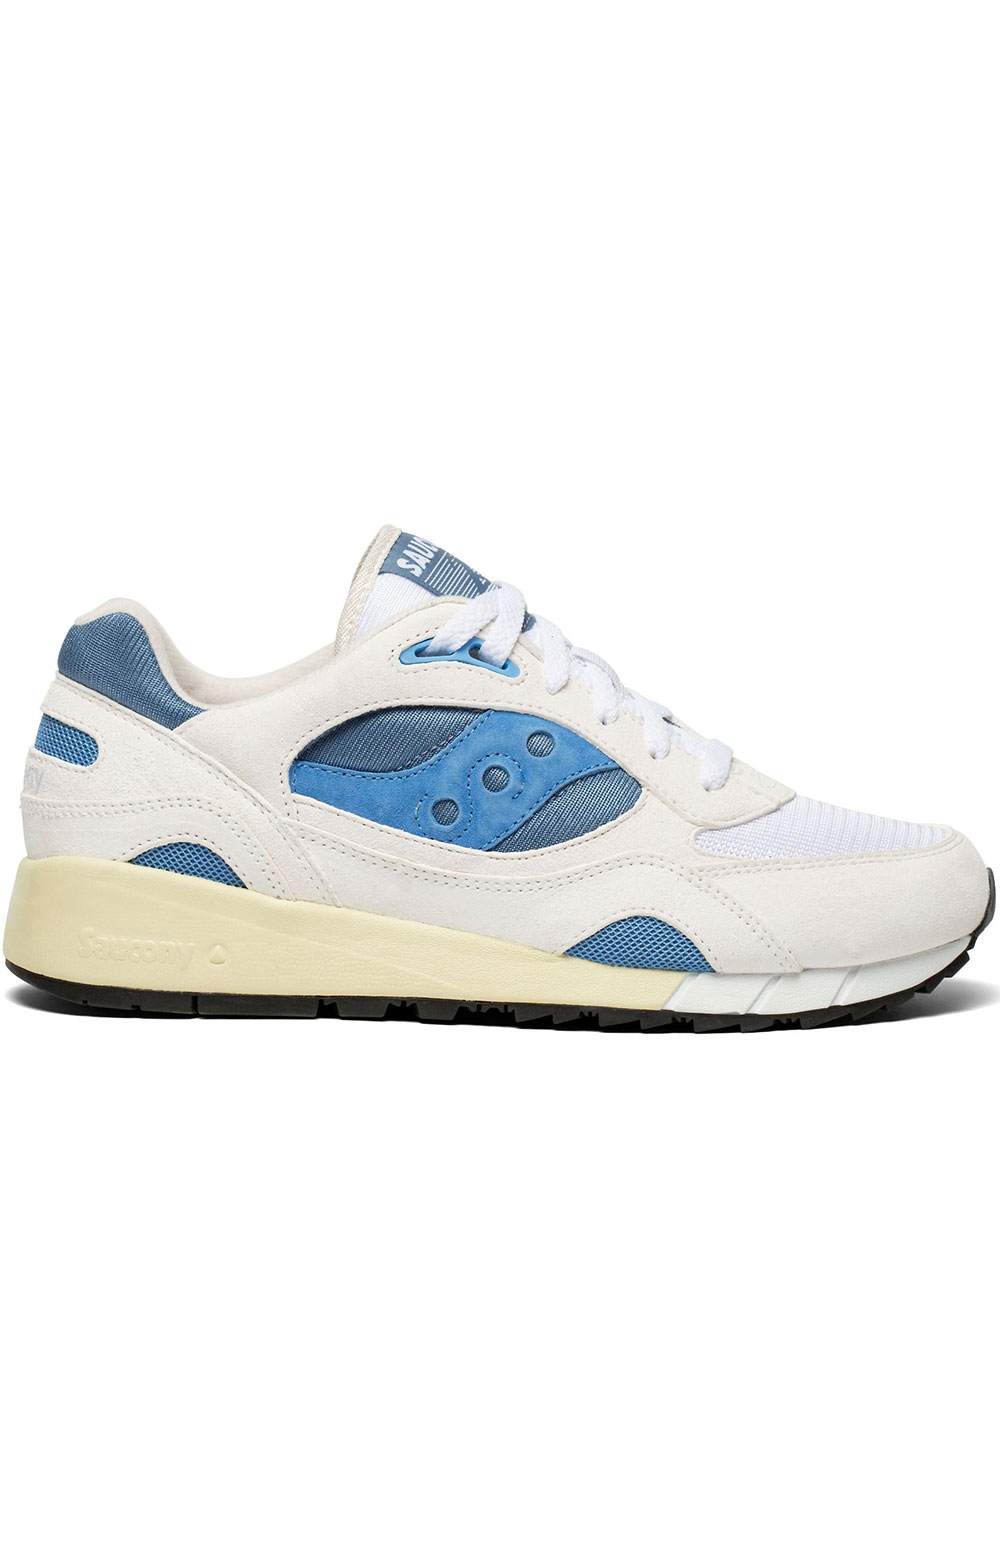 (S70441-13) Shadow 6000 Shoes - White/Blue